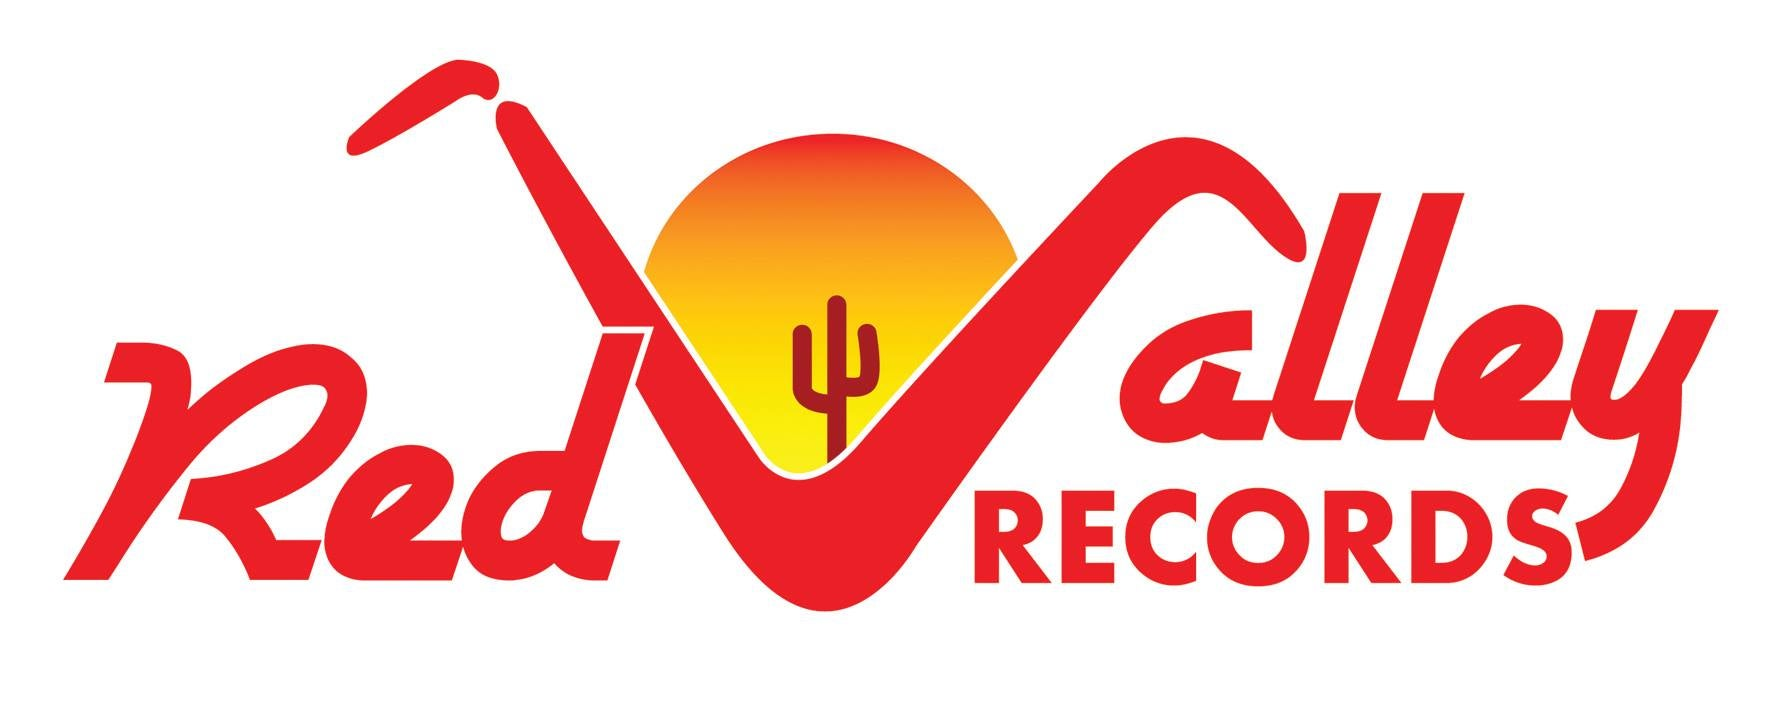 Redvalleyrecords